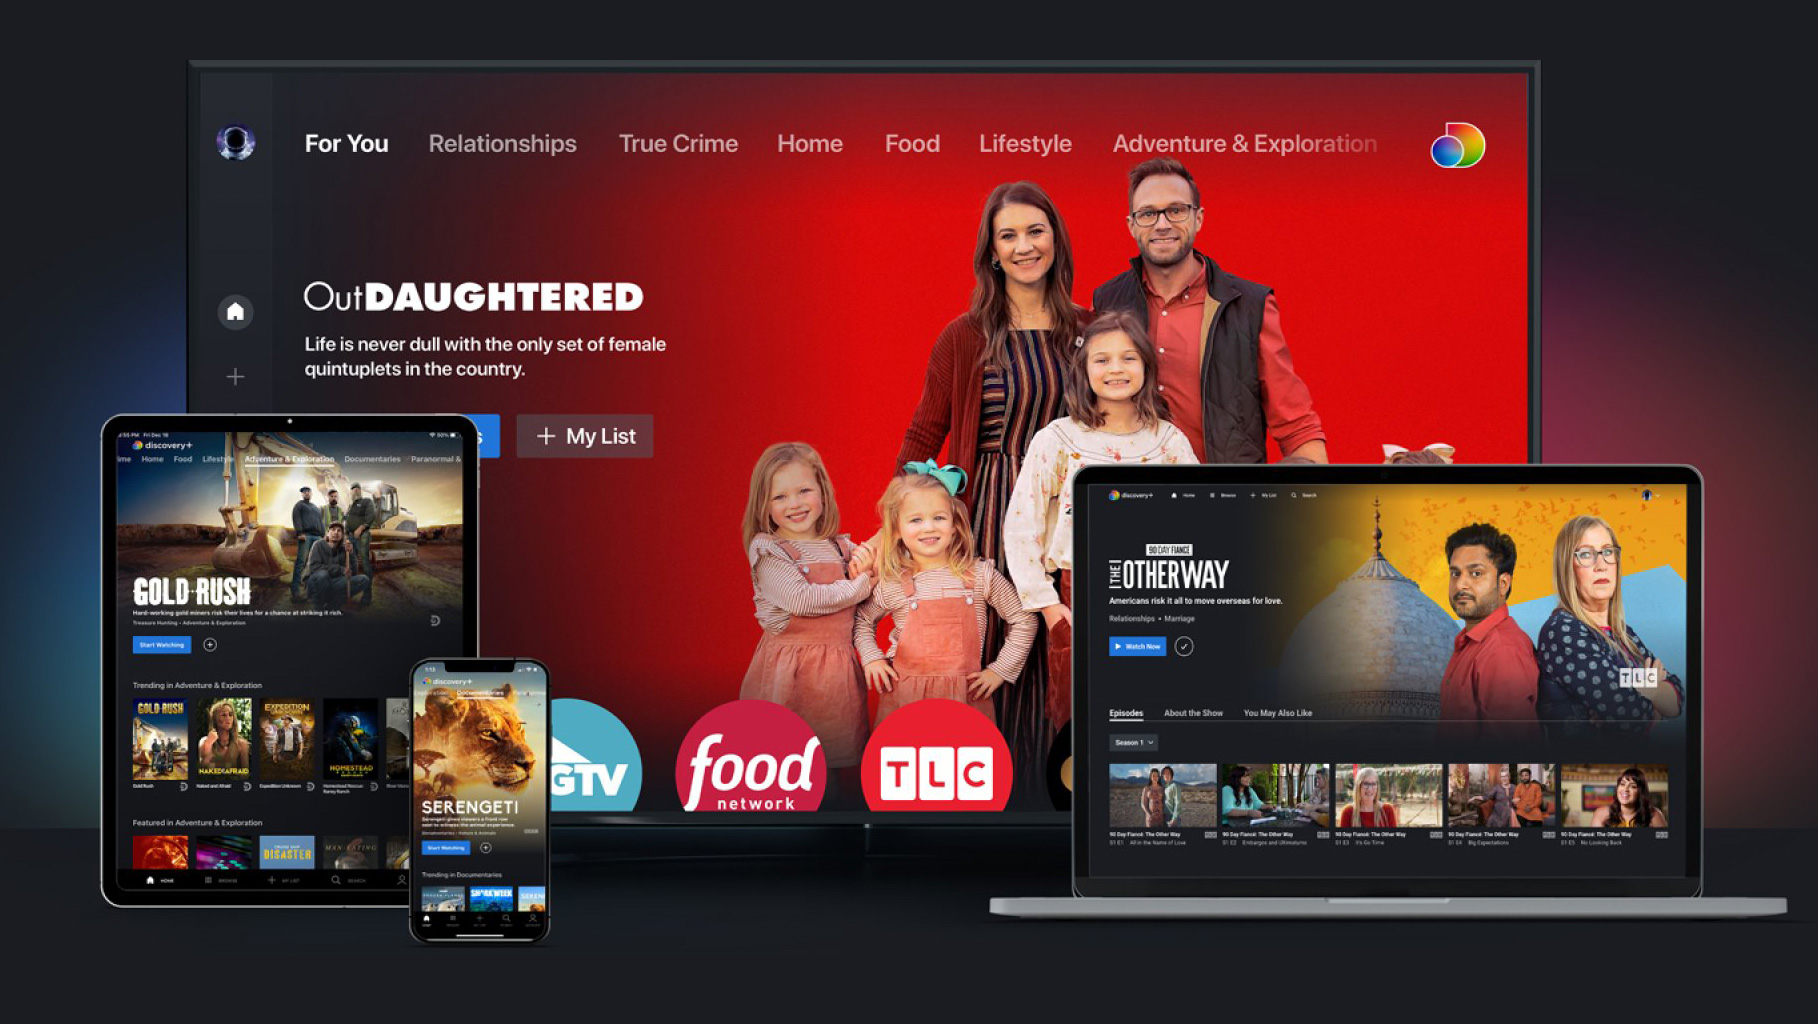 The interface of Discovery streaming service Discovery+ is displayed on a TV, an iPad and a laptop.